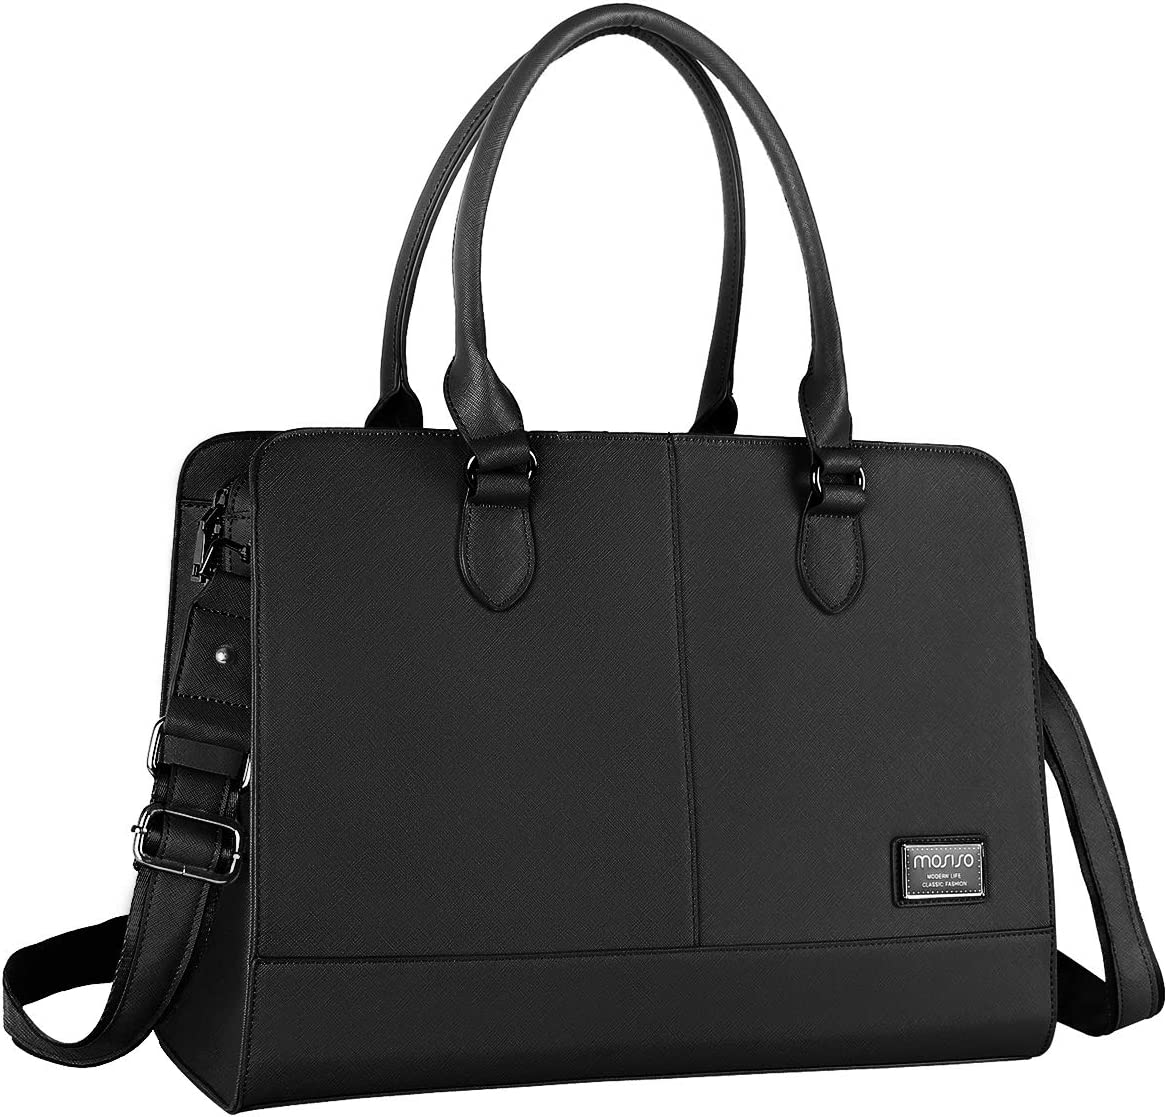 MOSISO Women Laptop Tote Bag (Up to 15.6 inch) 3 Layer Compartments, Black